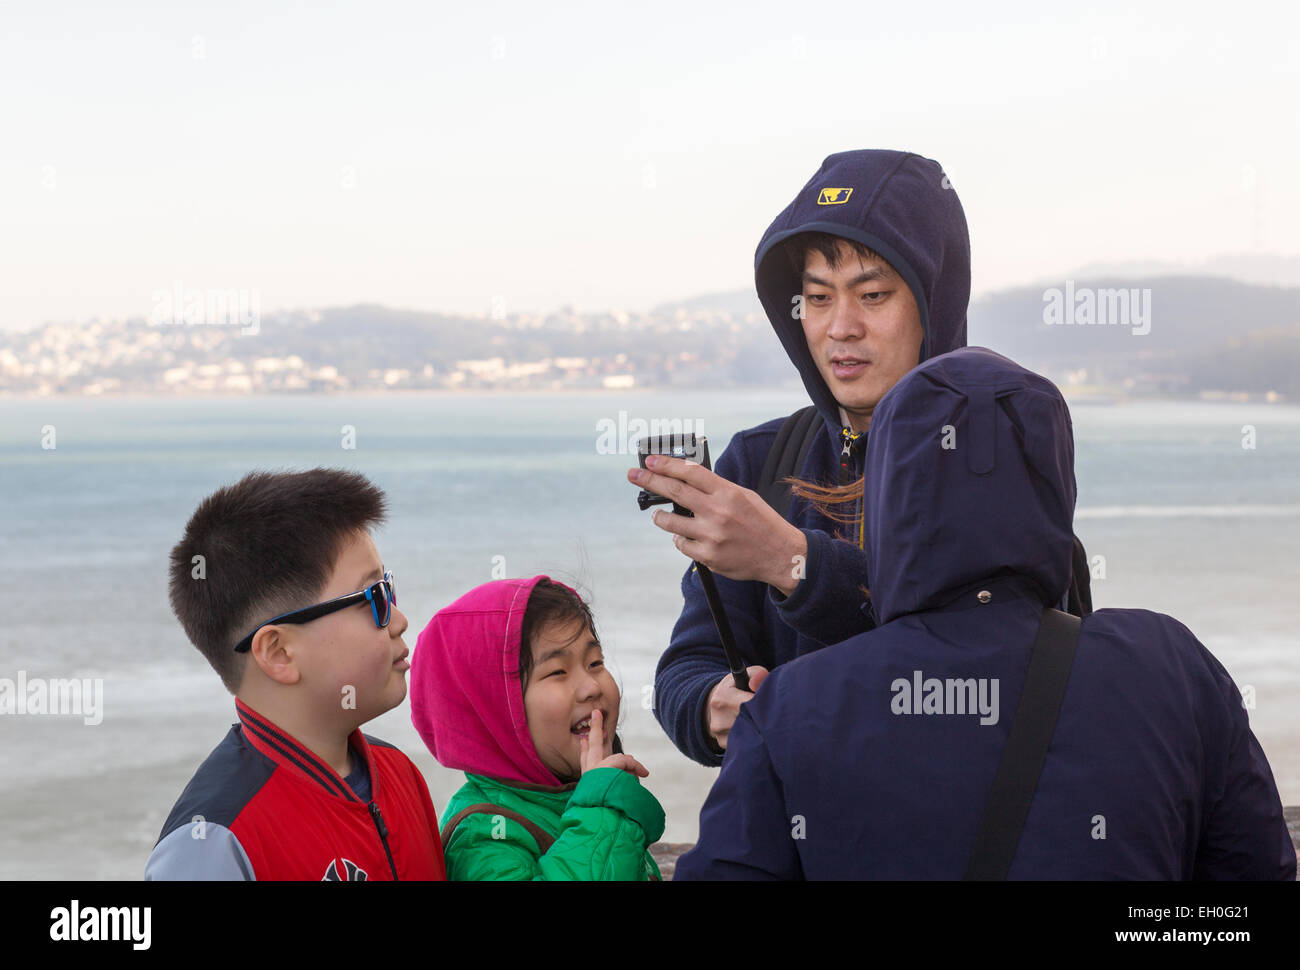 Asian man, using selfie stick, taking selfie photo, Vista Point, north side of Golden Gate Bridge, city of Sausalito, Stock Photo